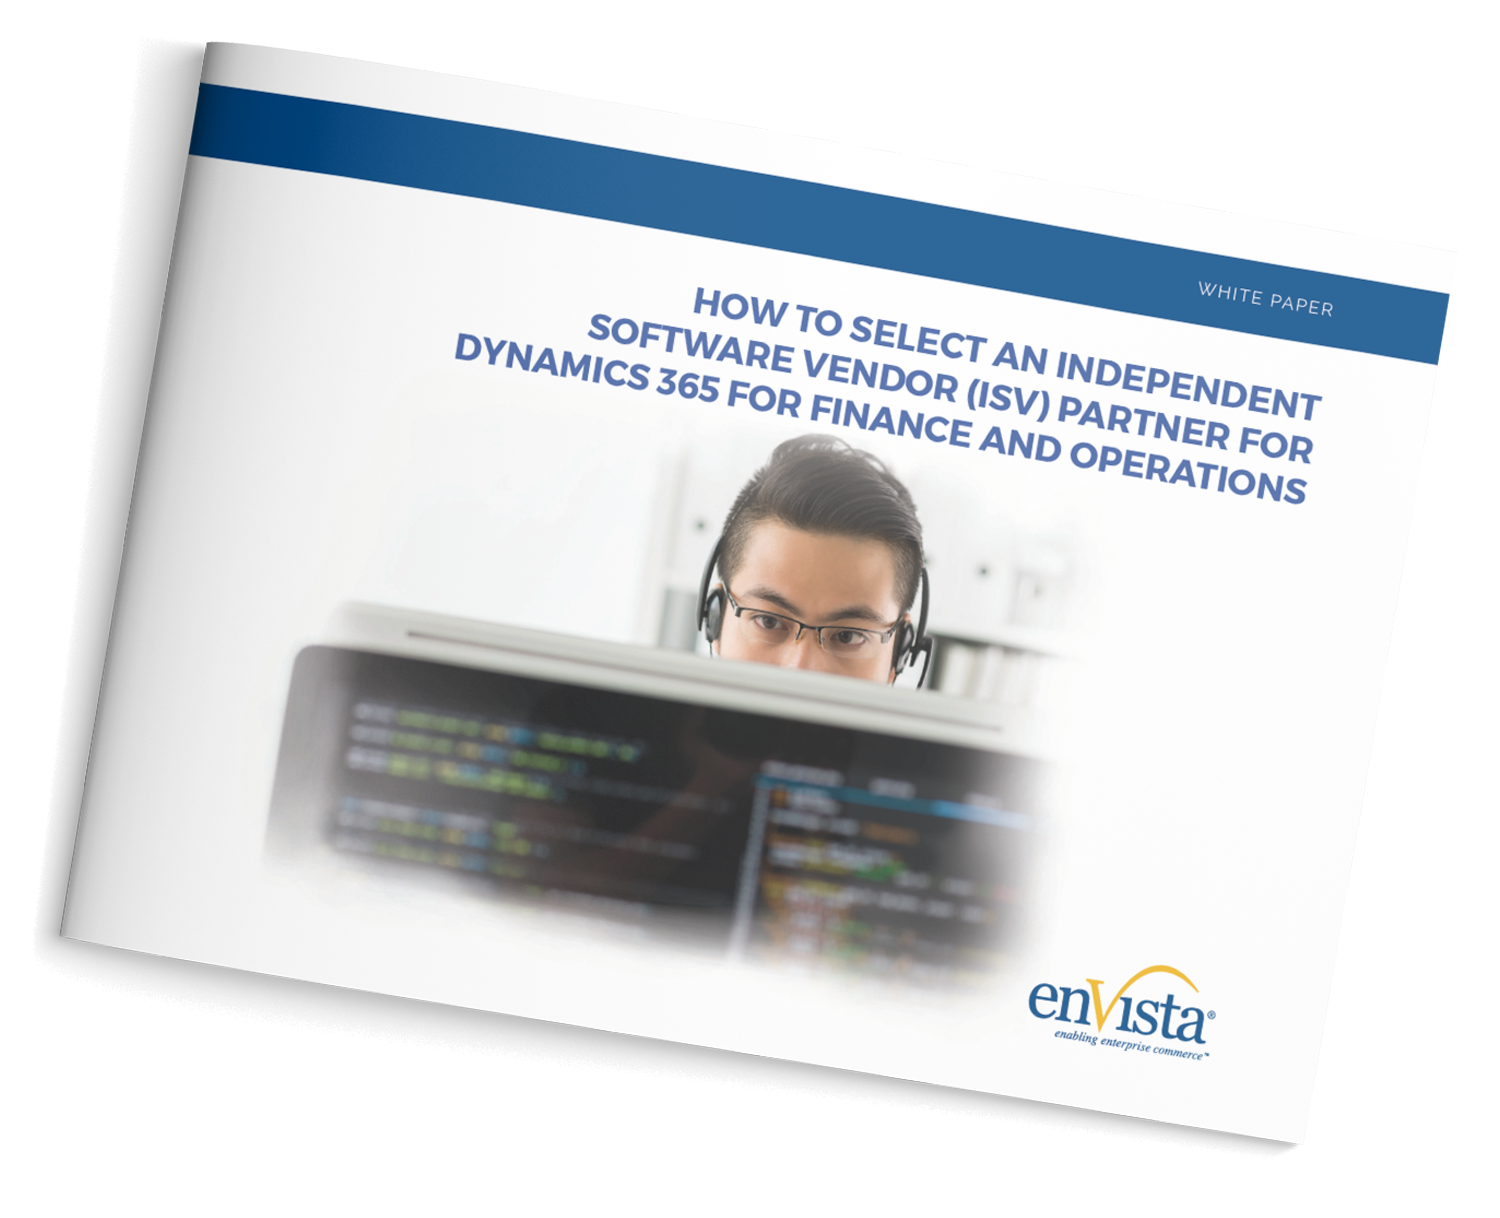 How-to-Select-an-Independent-Software-Vendor-Partner-For-D365-1